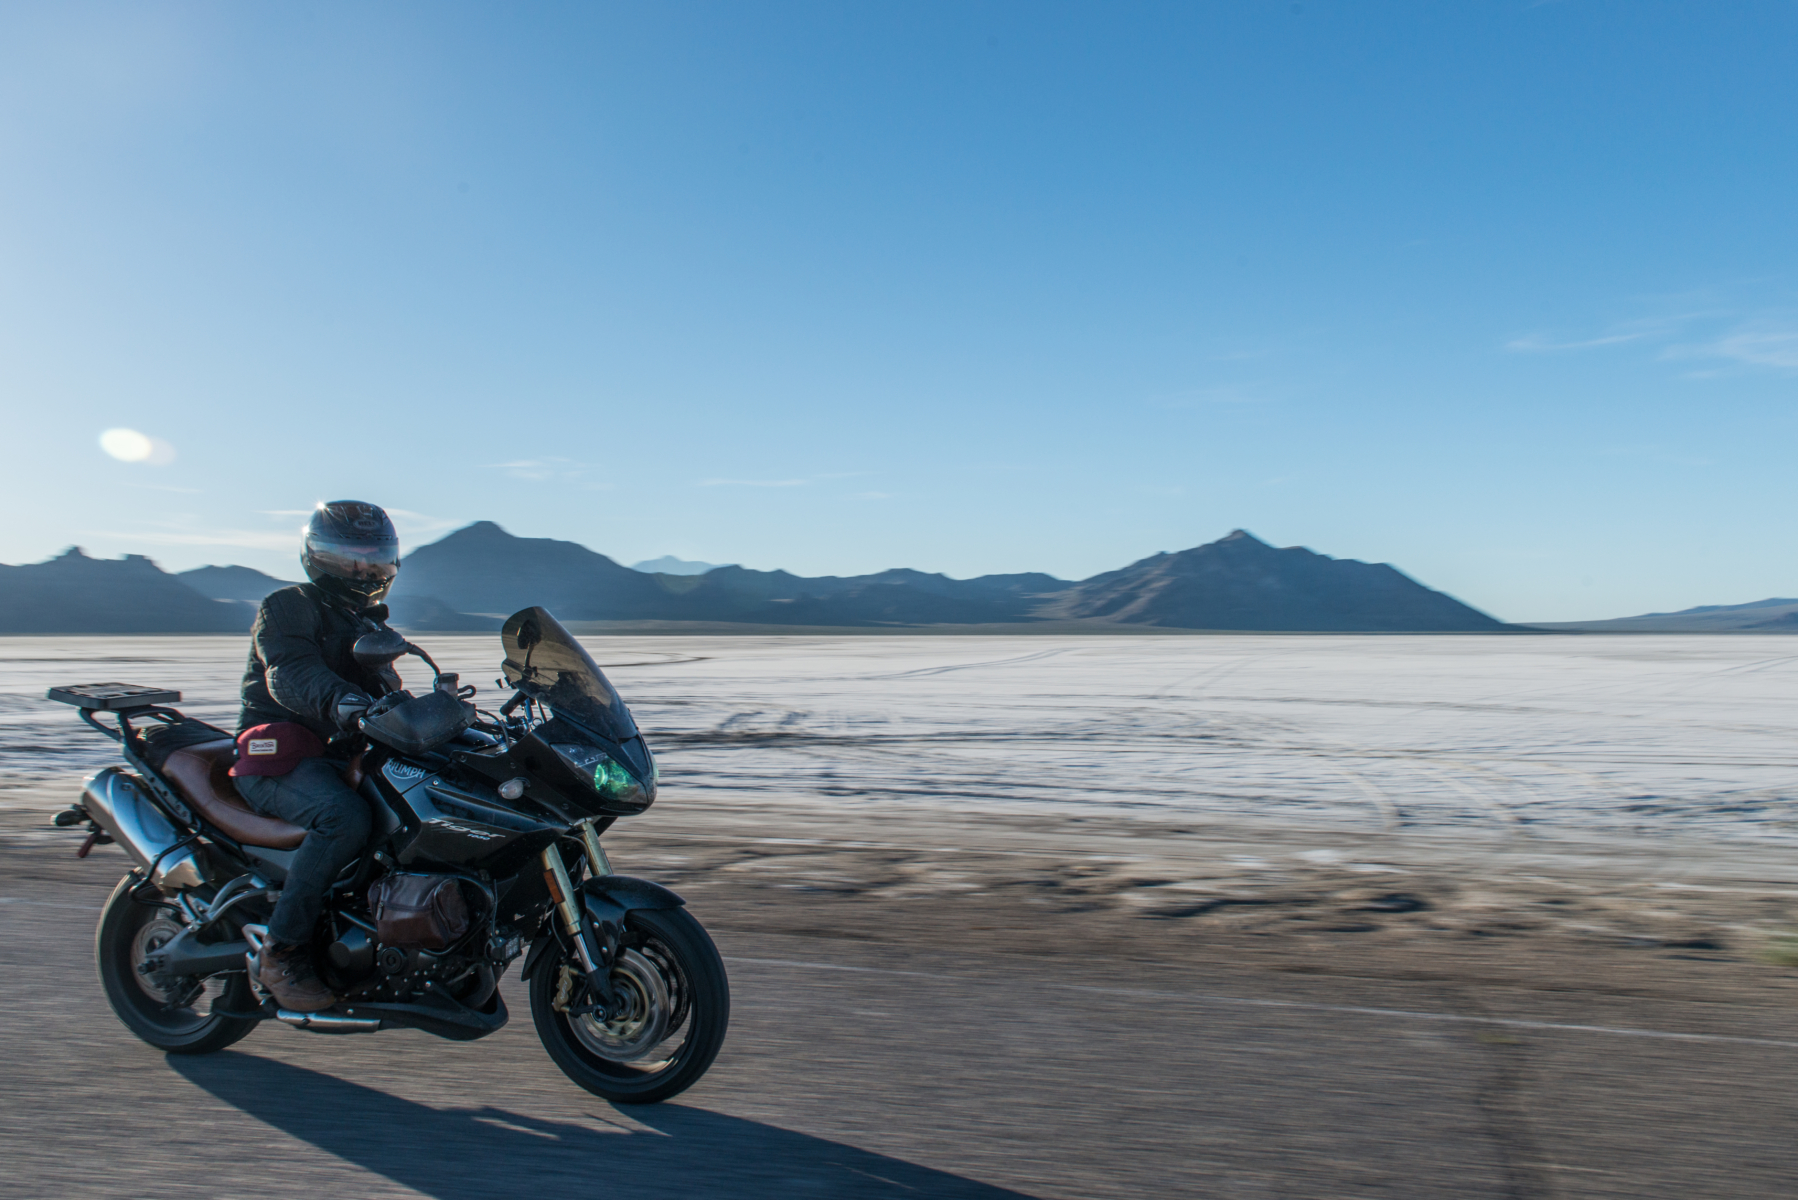 Riding out to Bonneville Salt Flats